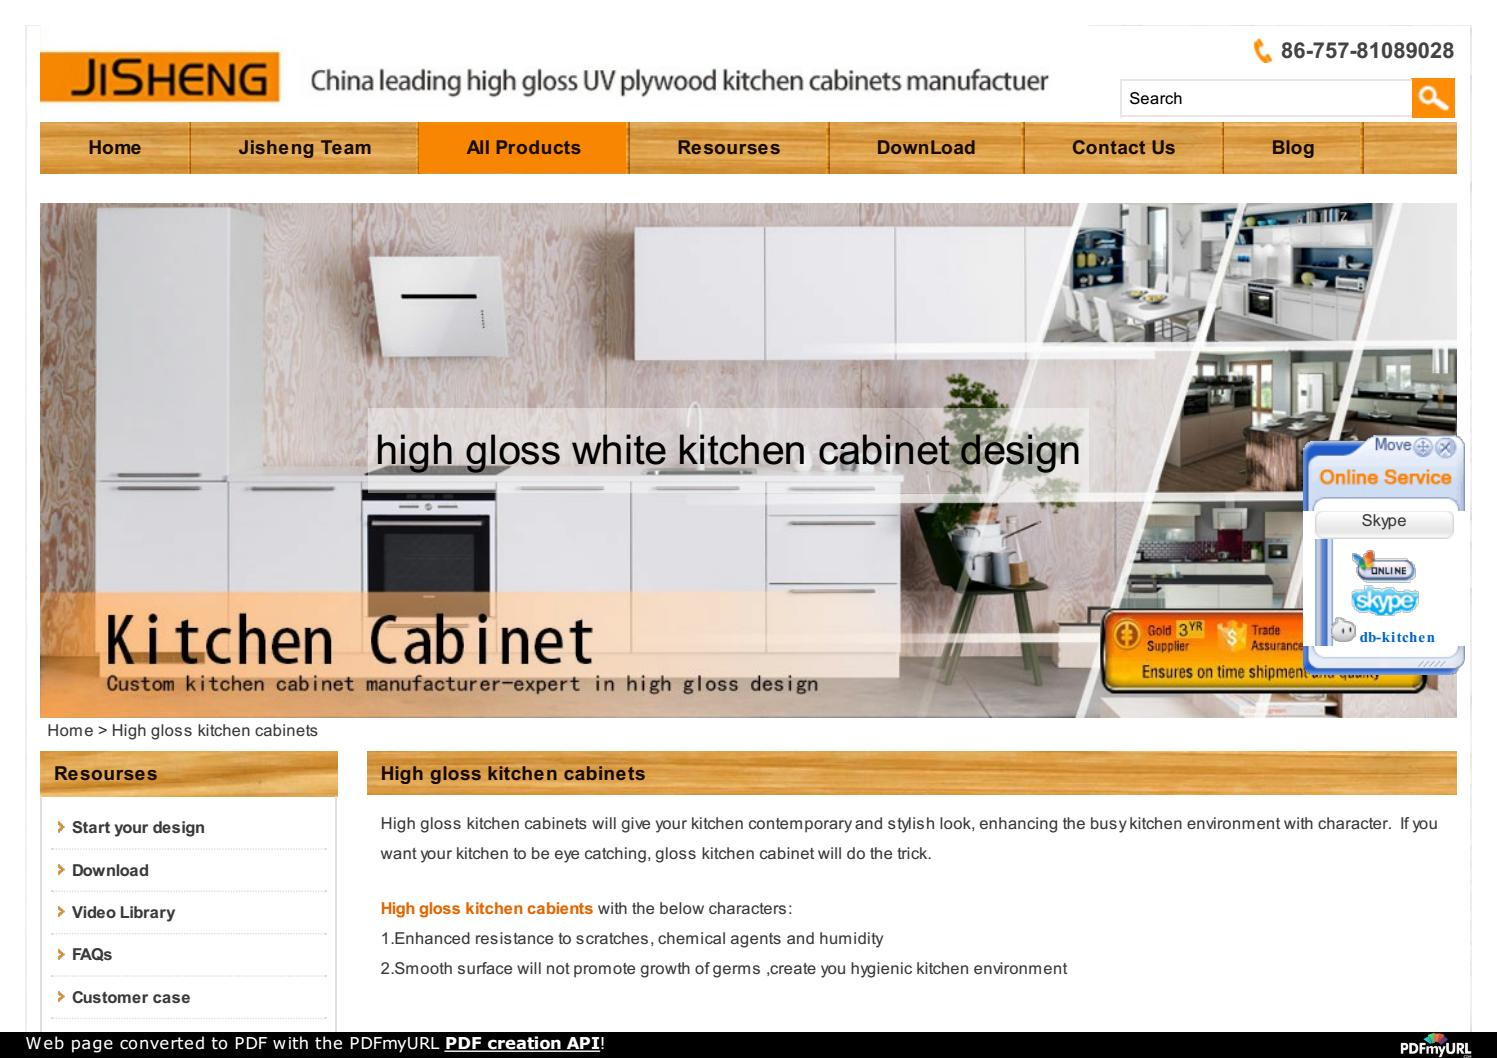 High Gloss Kitchen Cabinets Manufacturer Expert In High Gloss Design By Dabankitchen Issuu